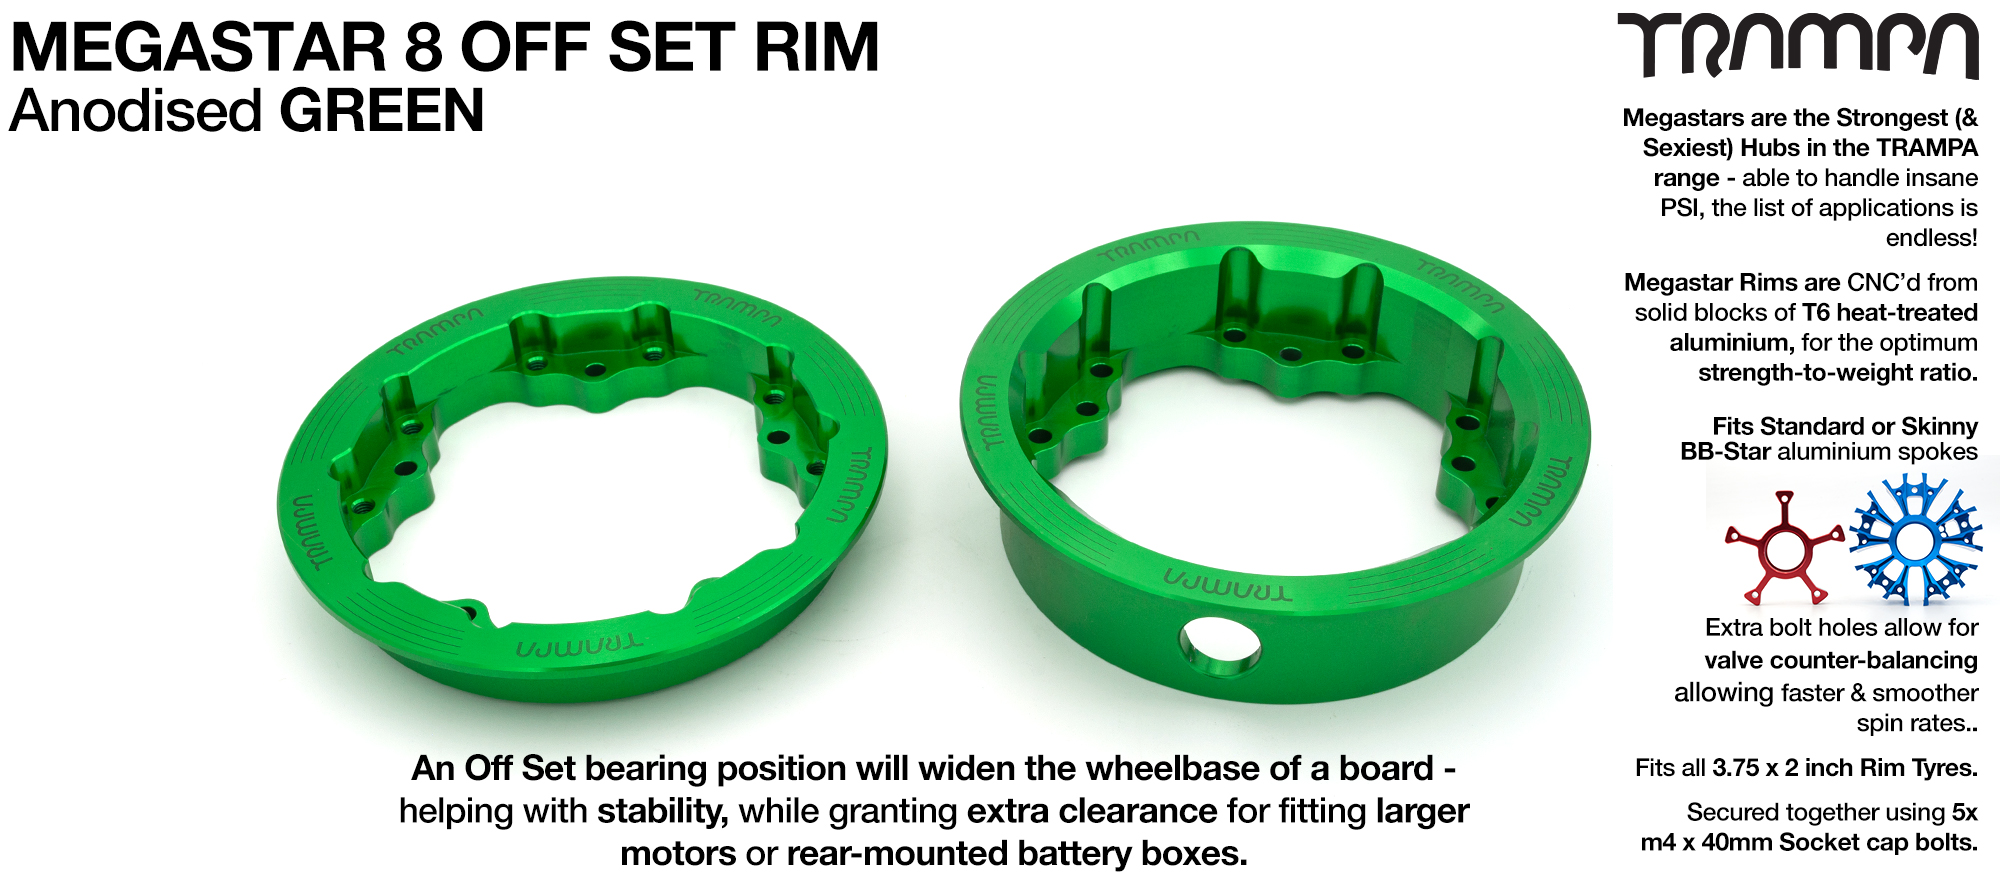 8 Inch MEGASTAR Rim OFF SET - Anodised GREEN - Pro OFF-SET Superstars will widen your wheel base by 15mm